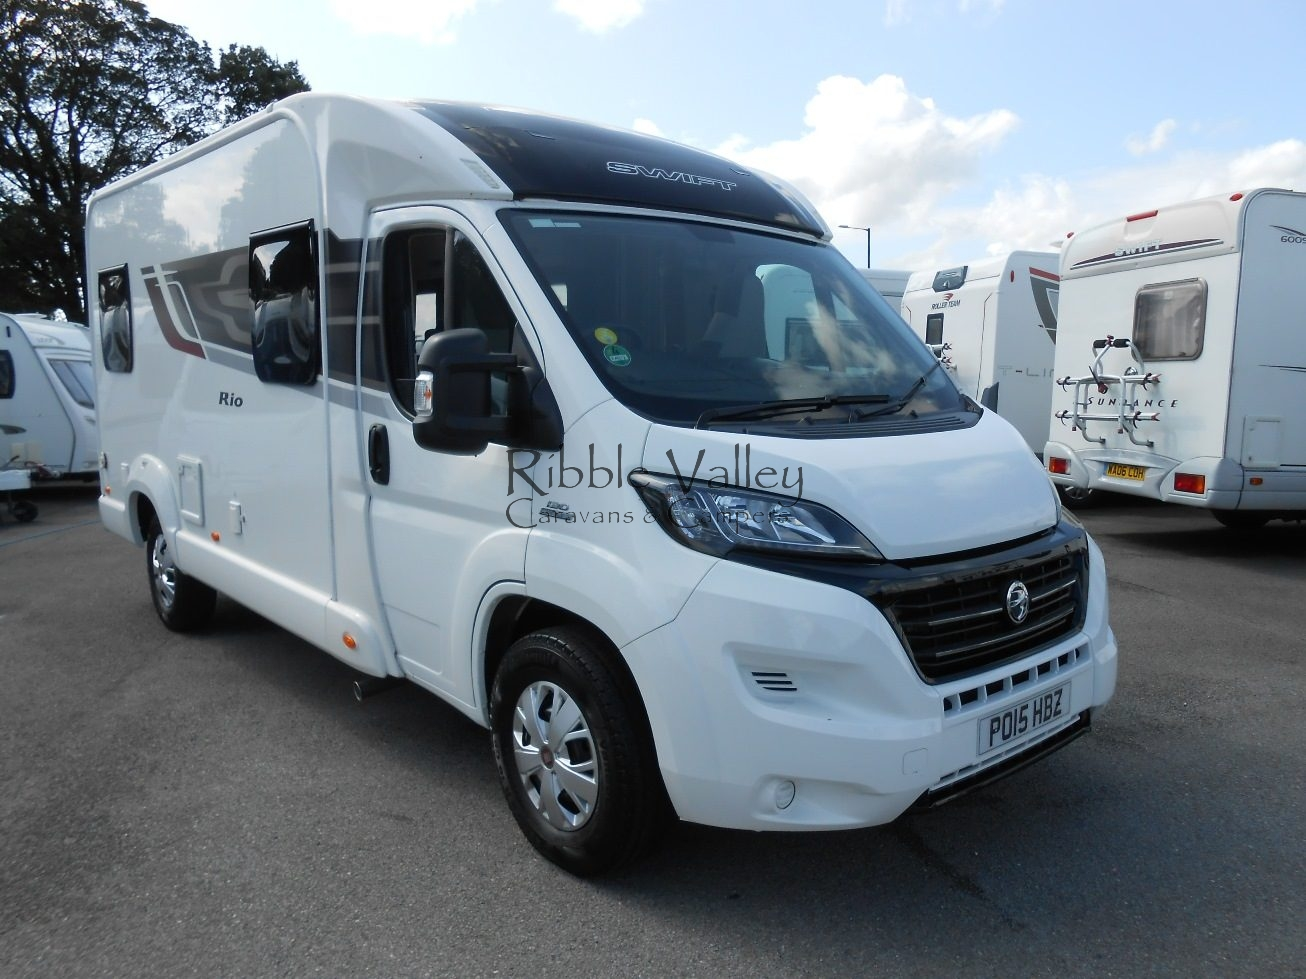 Here we have an outstanding 2015 Swift Rio 340 Low Profile Motorhome in beautiful condition throughout. The layout includes captains chairs with dinette at the front. Stylish kitchen fitted with integrated appliances. Central bathroom with shower and cassette toilet. At the rear of this motorhome is a comfortable lounge area which also assembles into a double bed. This model also includes an electric double bed that can be operated at night by just pressing a single button, and in the morning leave your bed made up and just press the button to bring the bed back to the top, this really does make life easier. This vehicle also has the tailgate that can be lifted up to give you the best view ever plus plenty of fresh air. This motorhome will come on the road fully serviced including warranty at the advertised price. We can also arrange finance packages subject to status. Please call 07742972828 for more details. Open 7 days a week. Part exchange welcome.